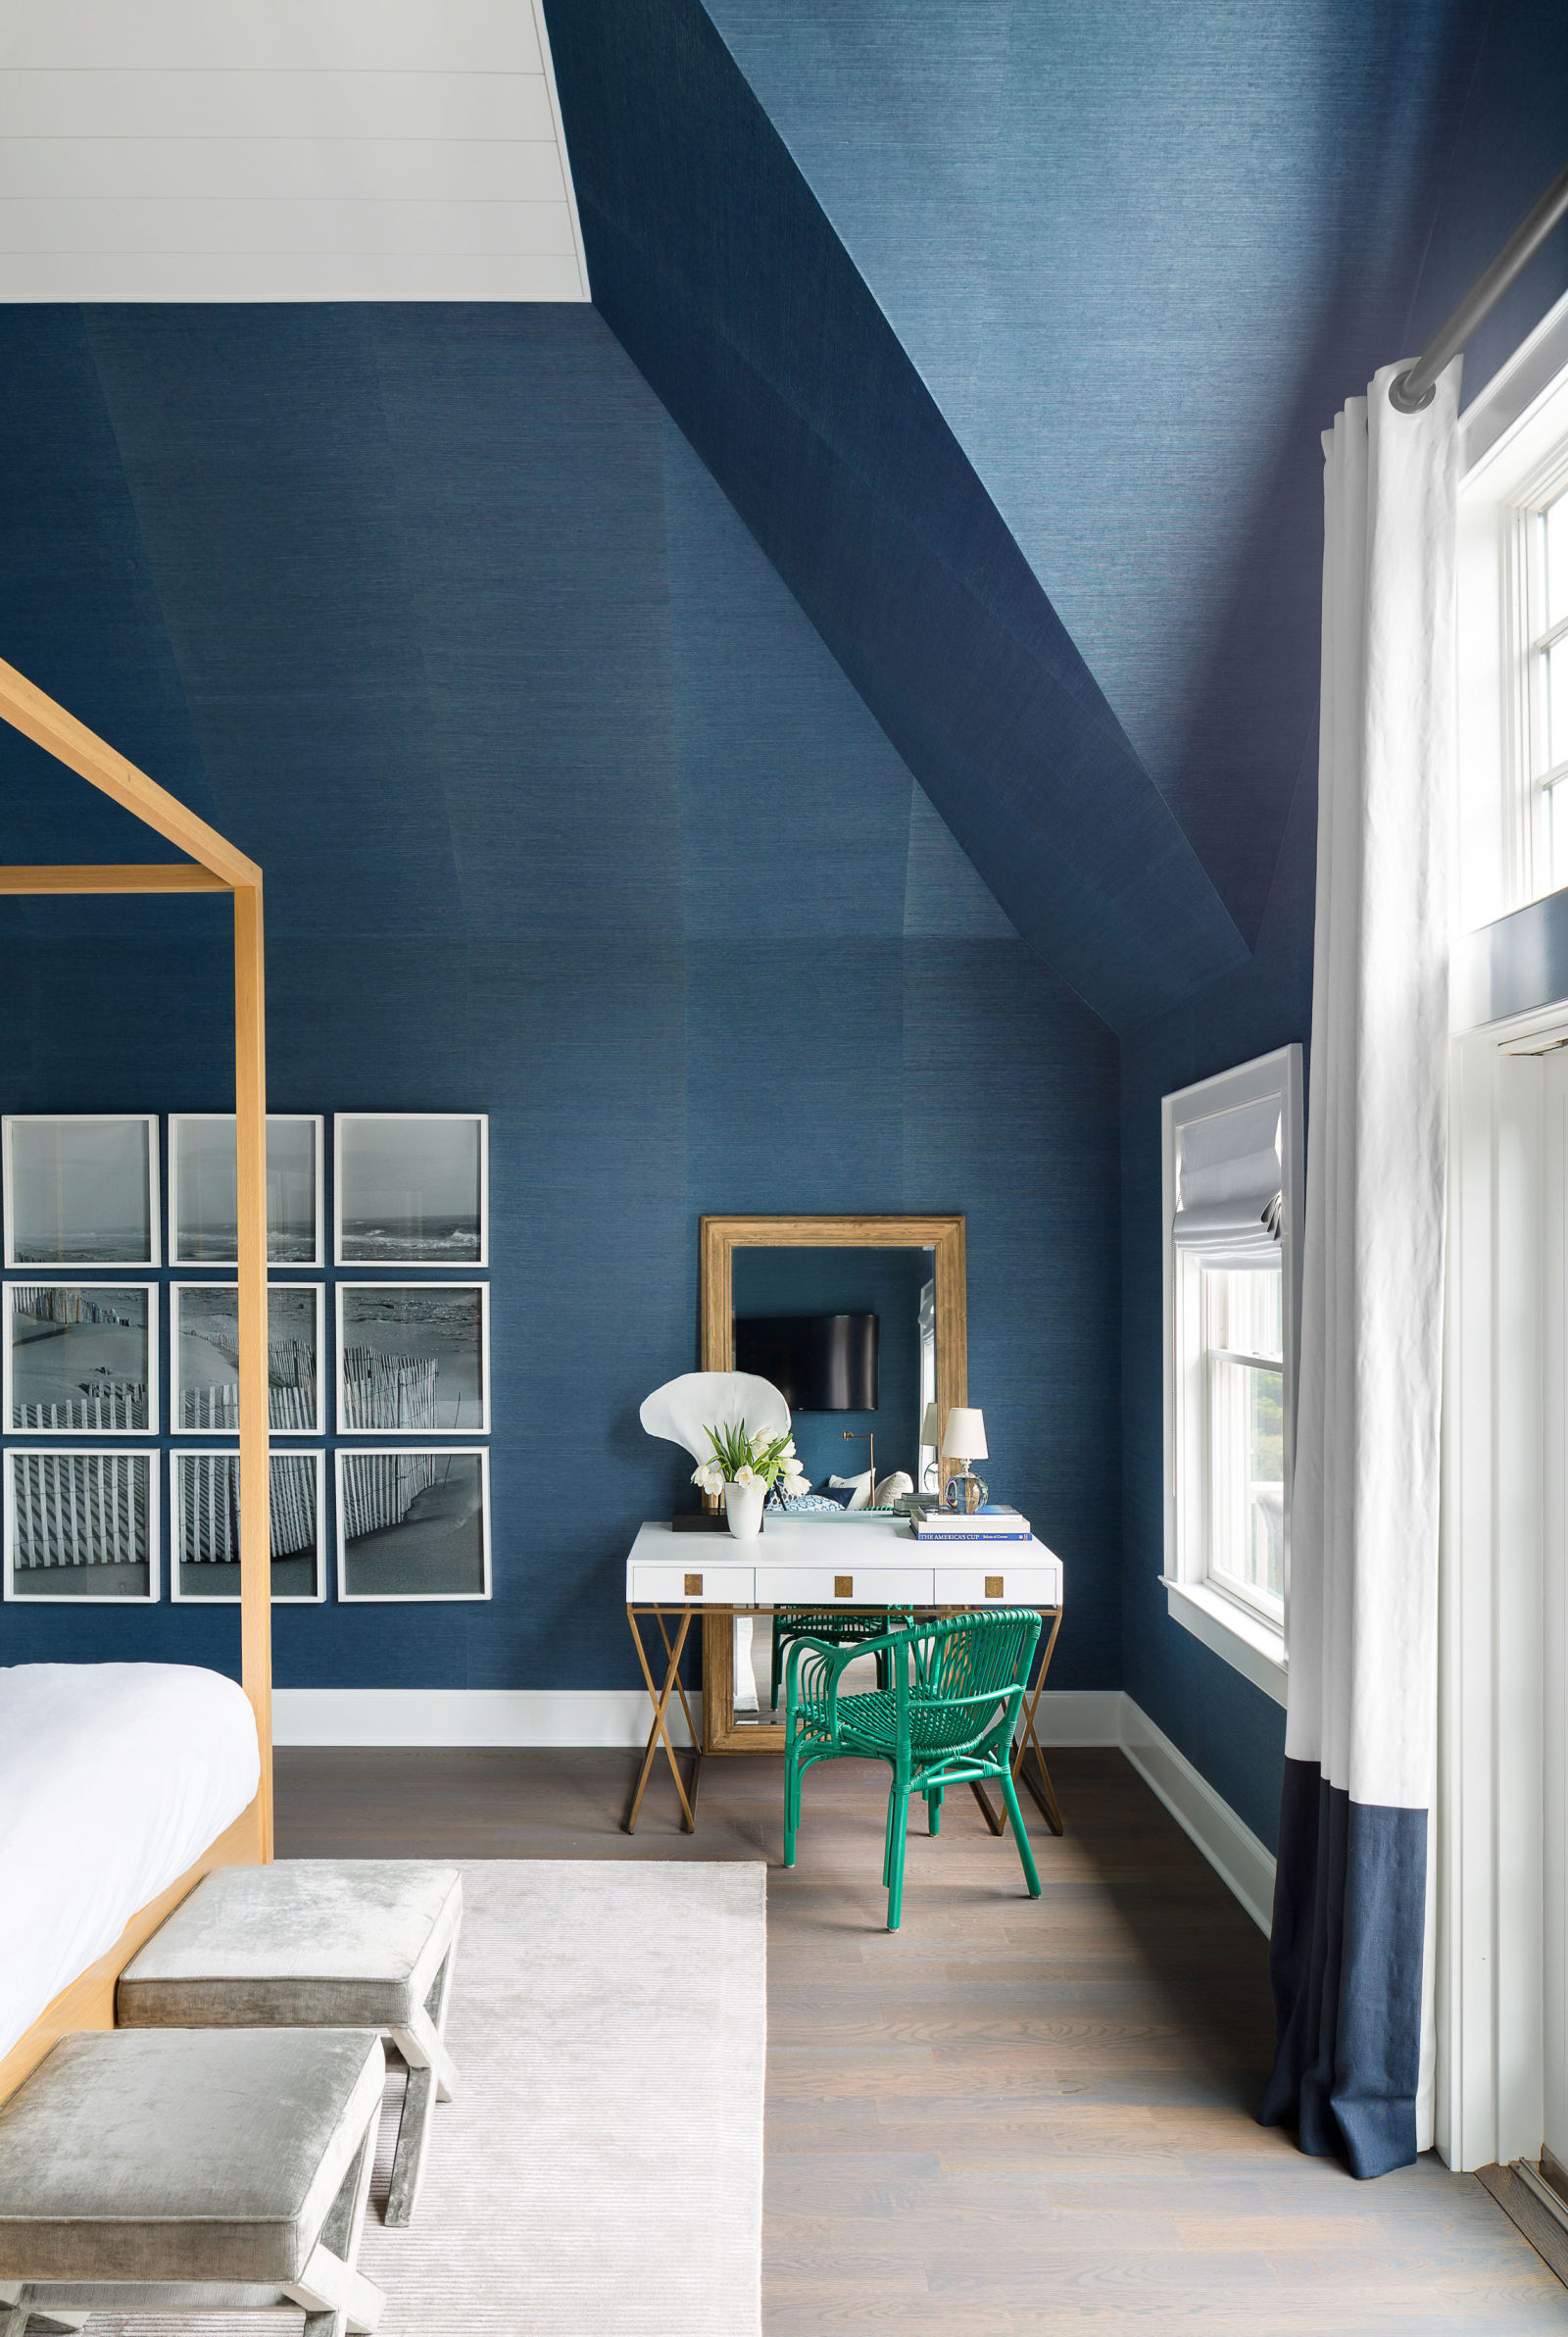 This Hamptons Home Proves That Feeling Blue Doesnu0027t Have To Be A Bad Thing.  Intended To Recall The Colors Of The Ocean, The Beachy Shade Used Here ...